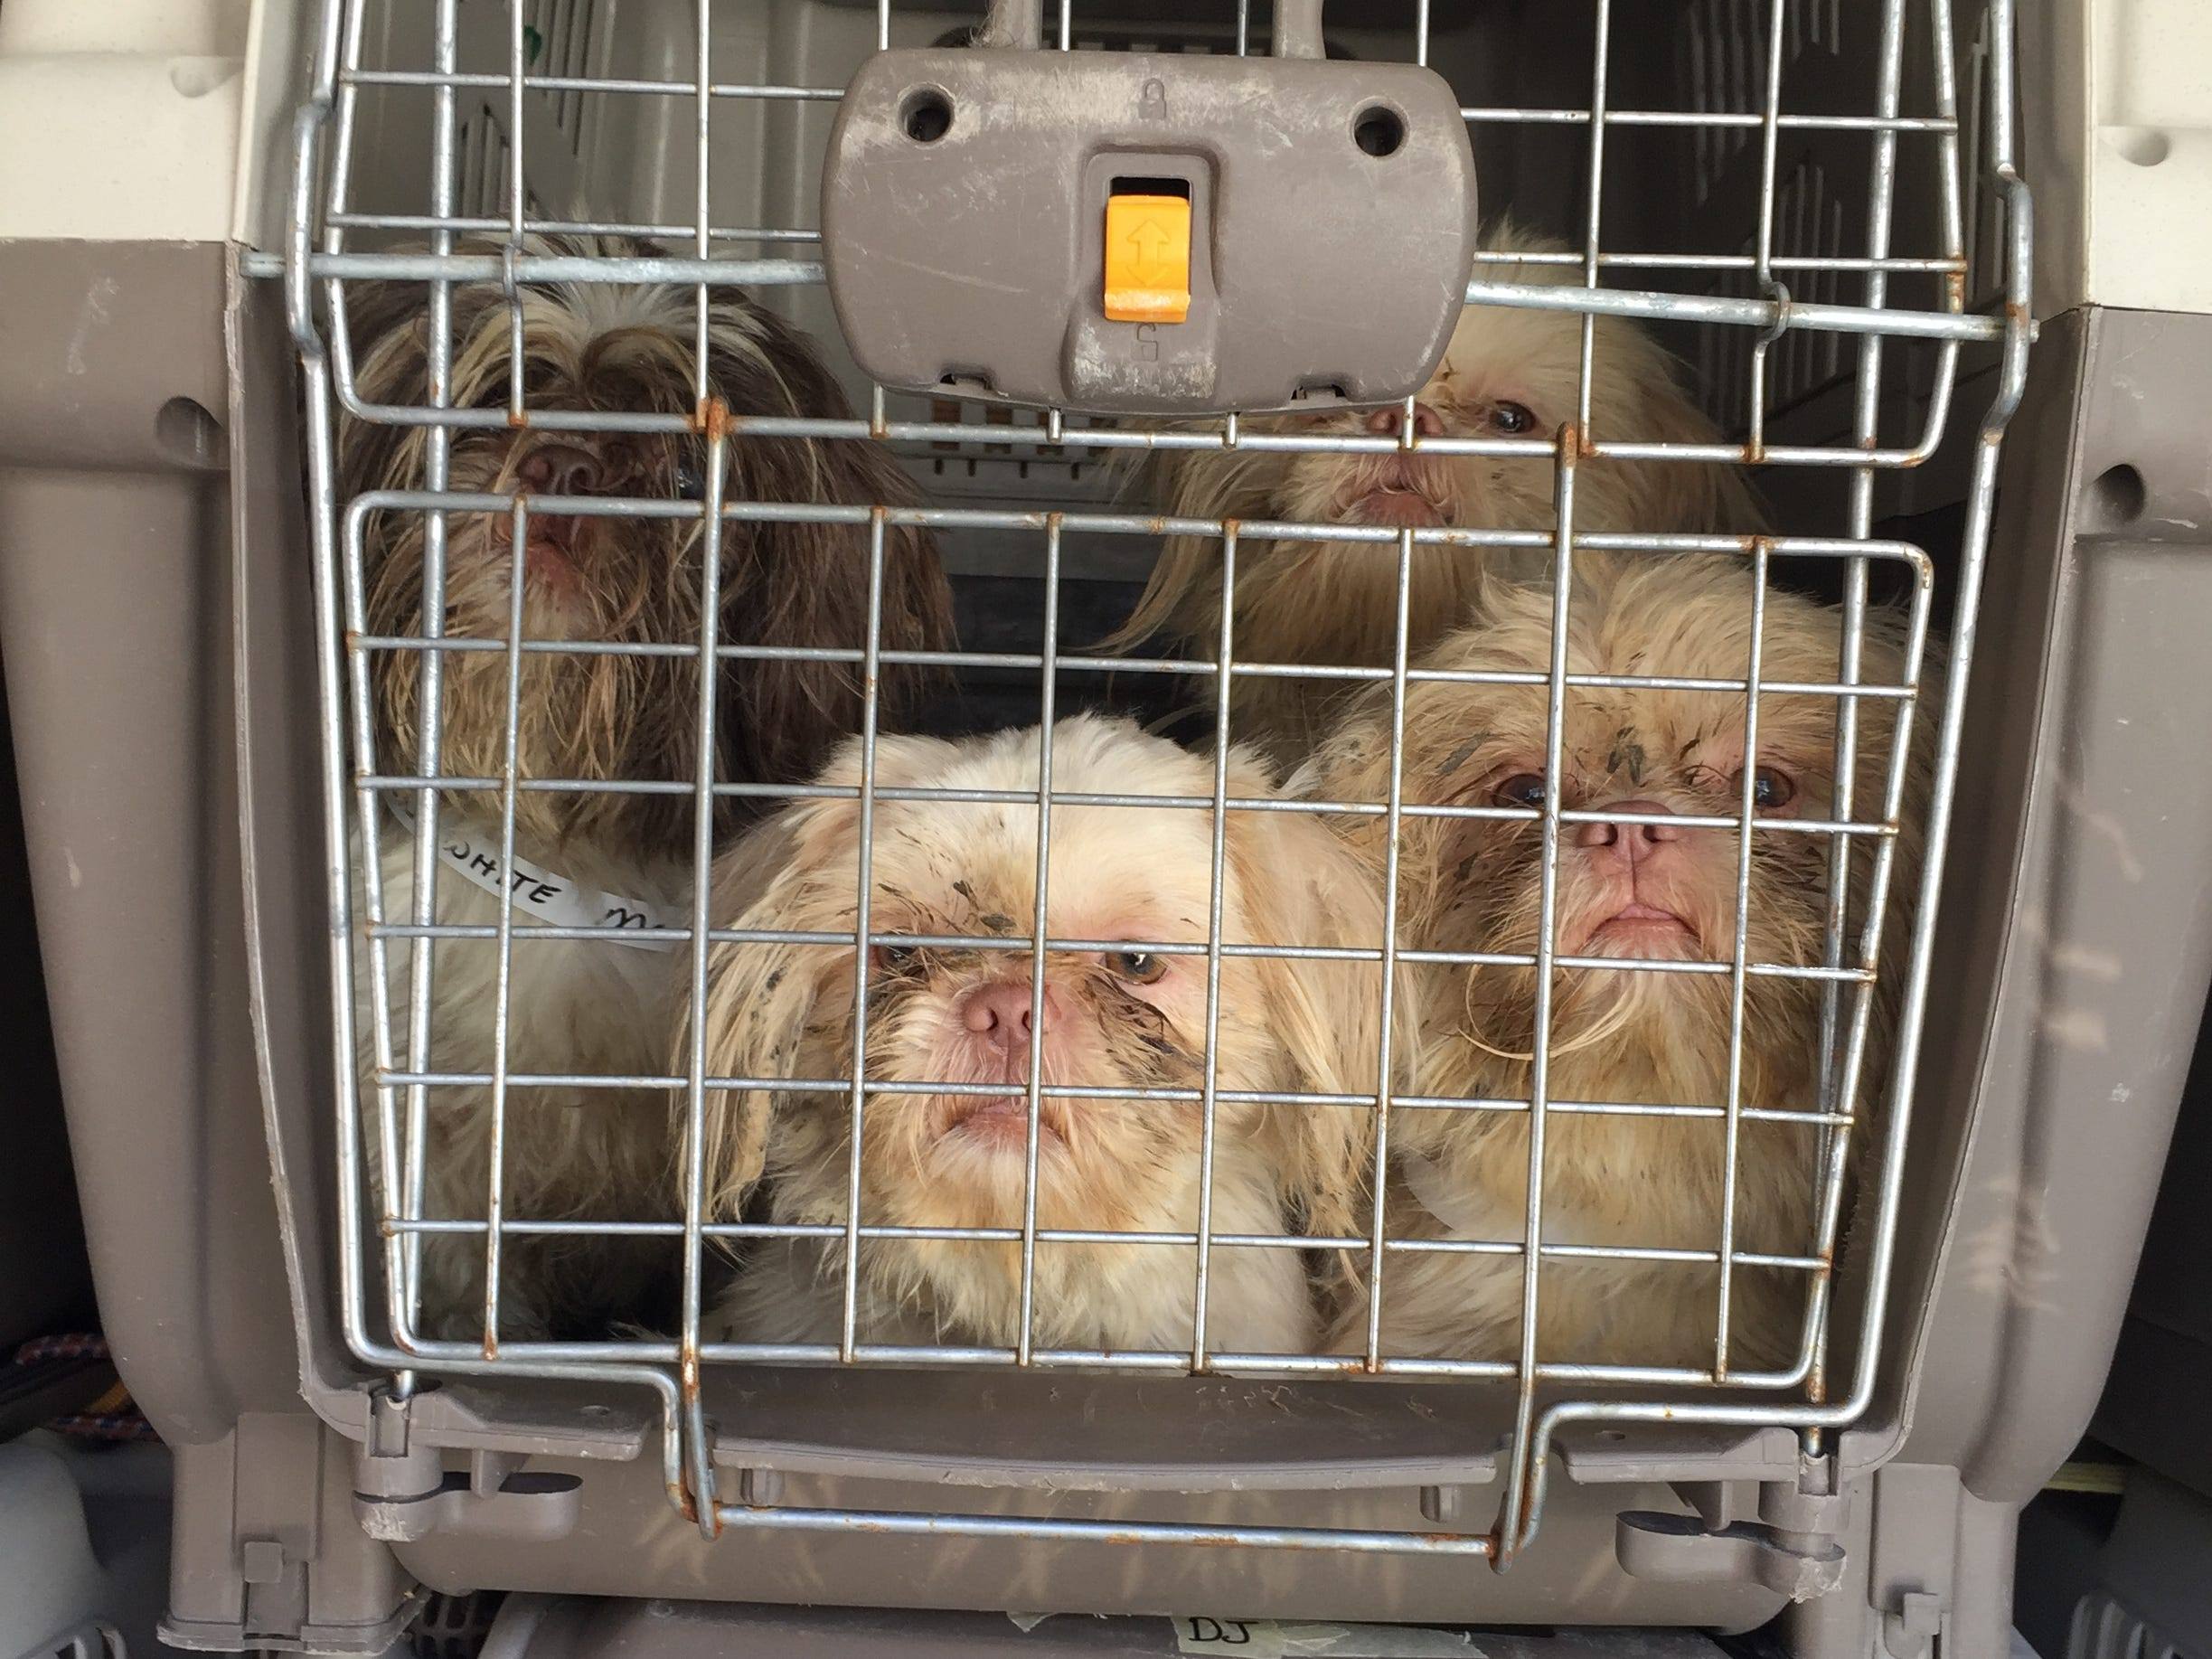 Almost 80 Shih Tzus rescued from rural residence in Callahan County, Texas